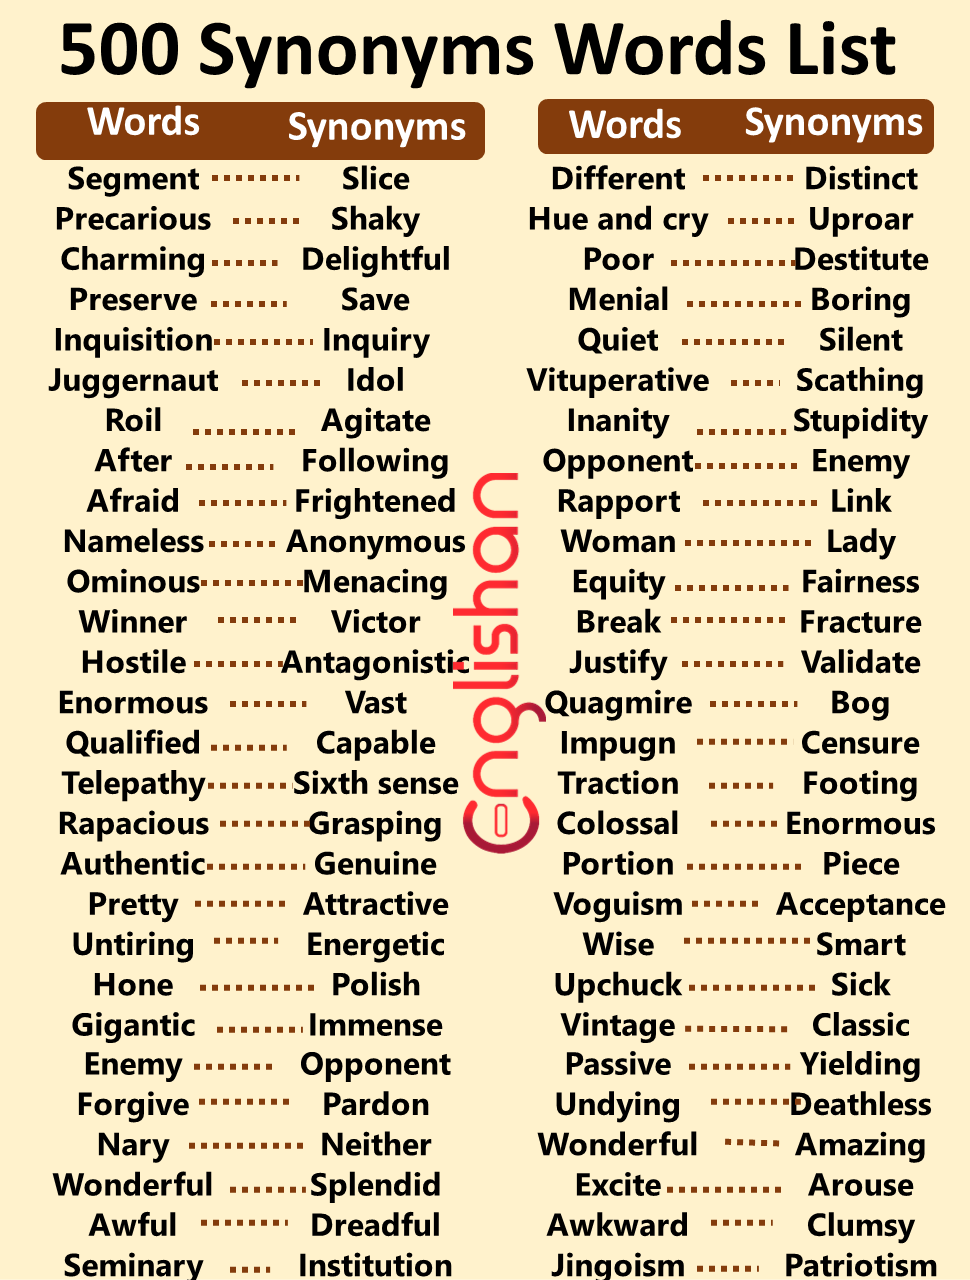 500 Synonyms Words List for Improver